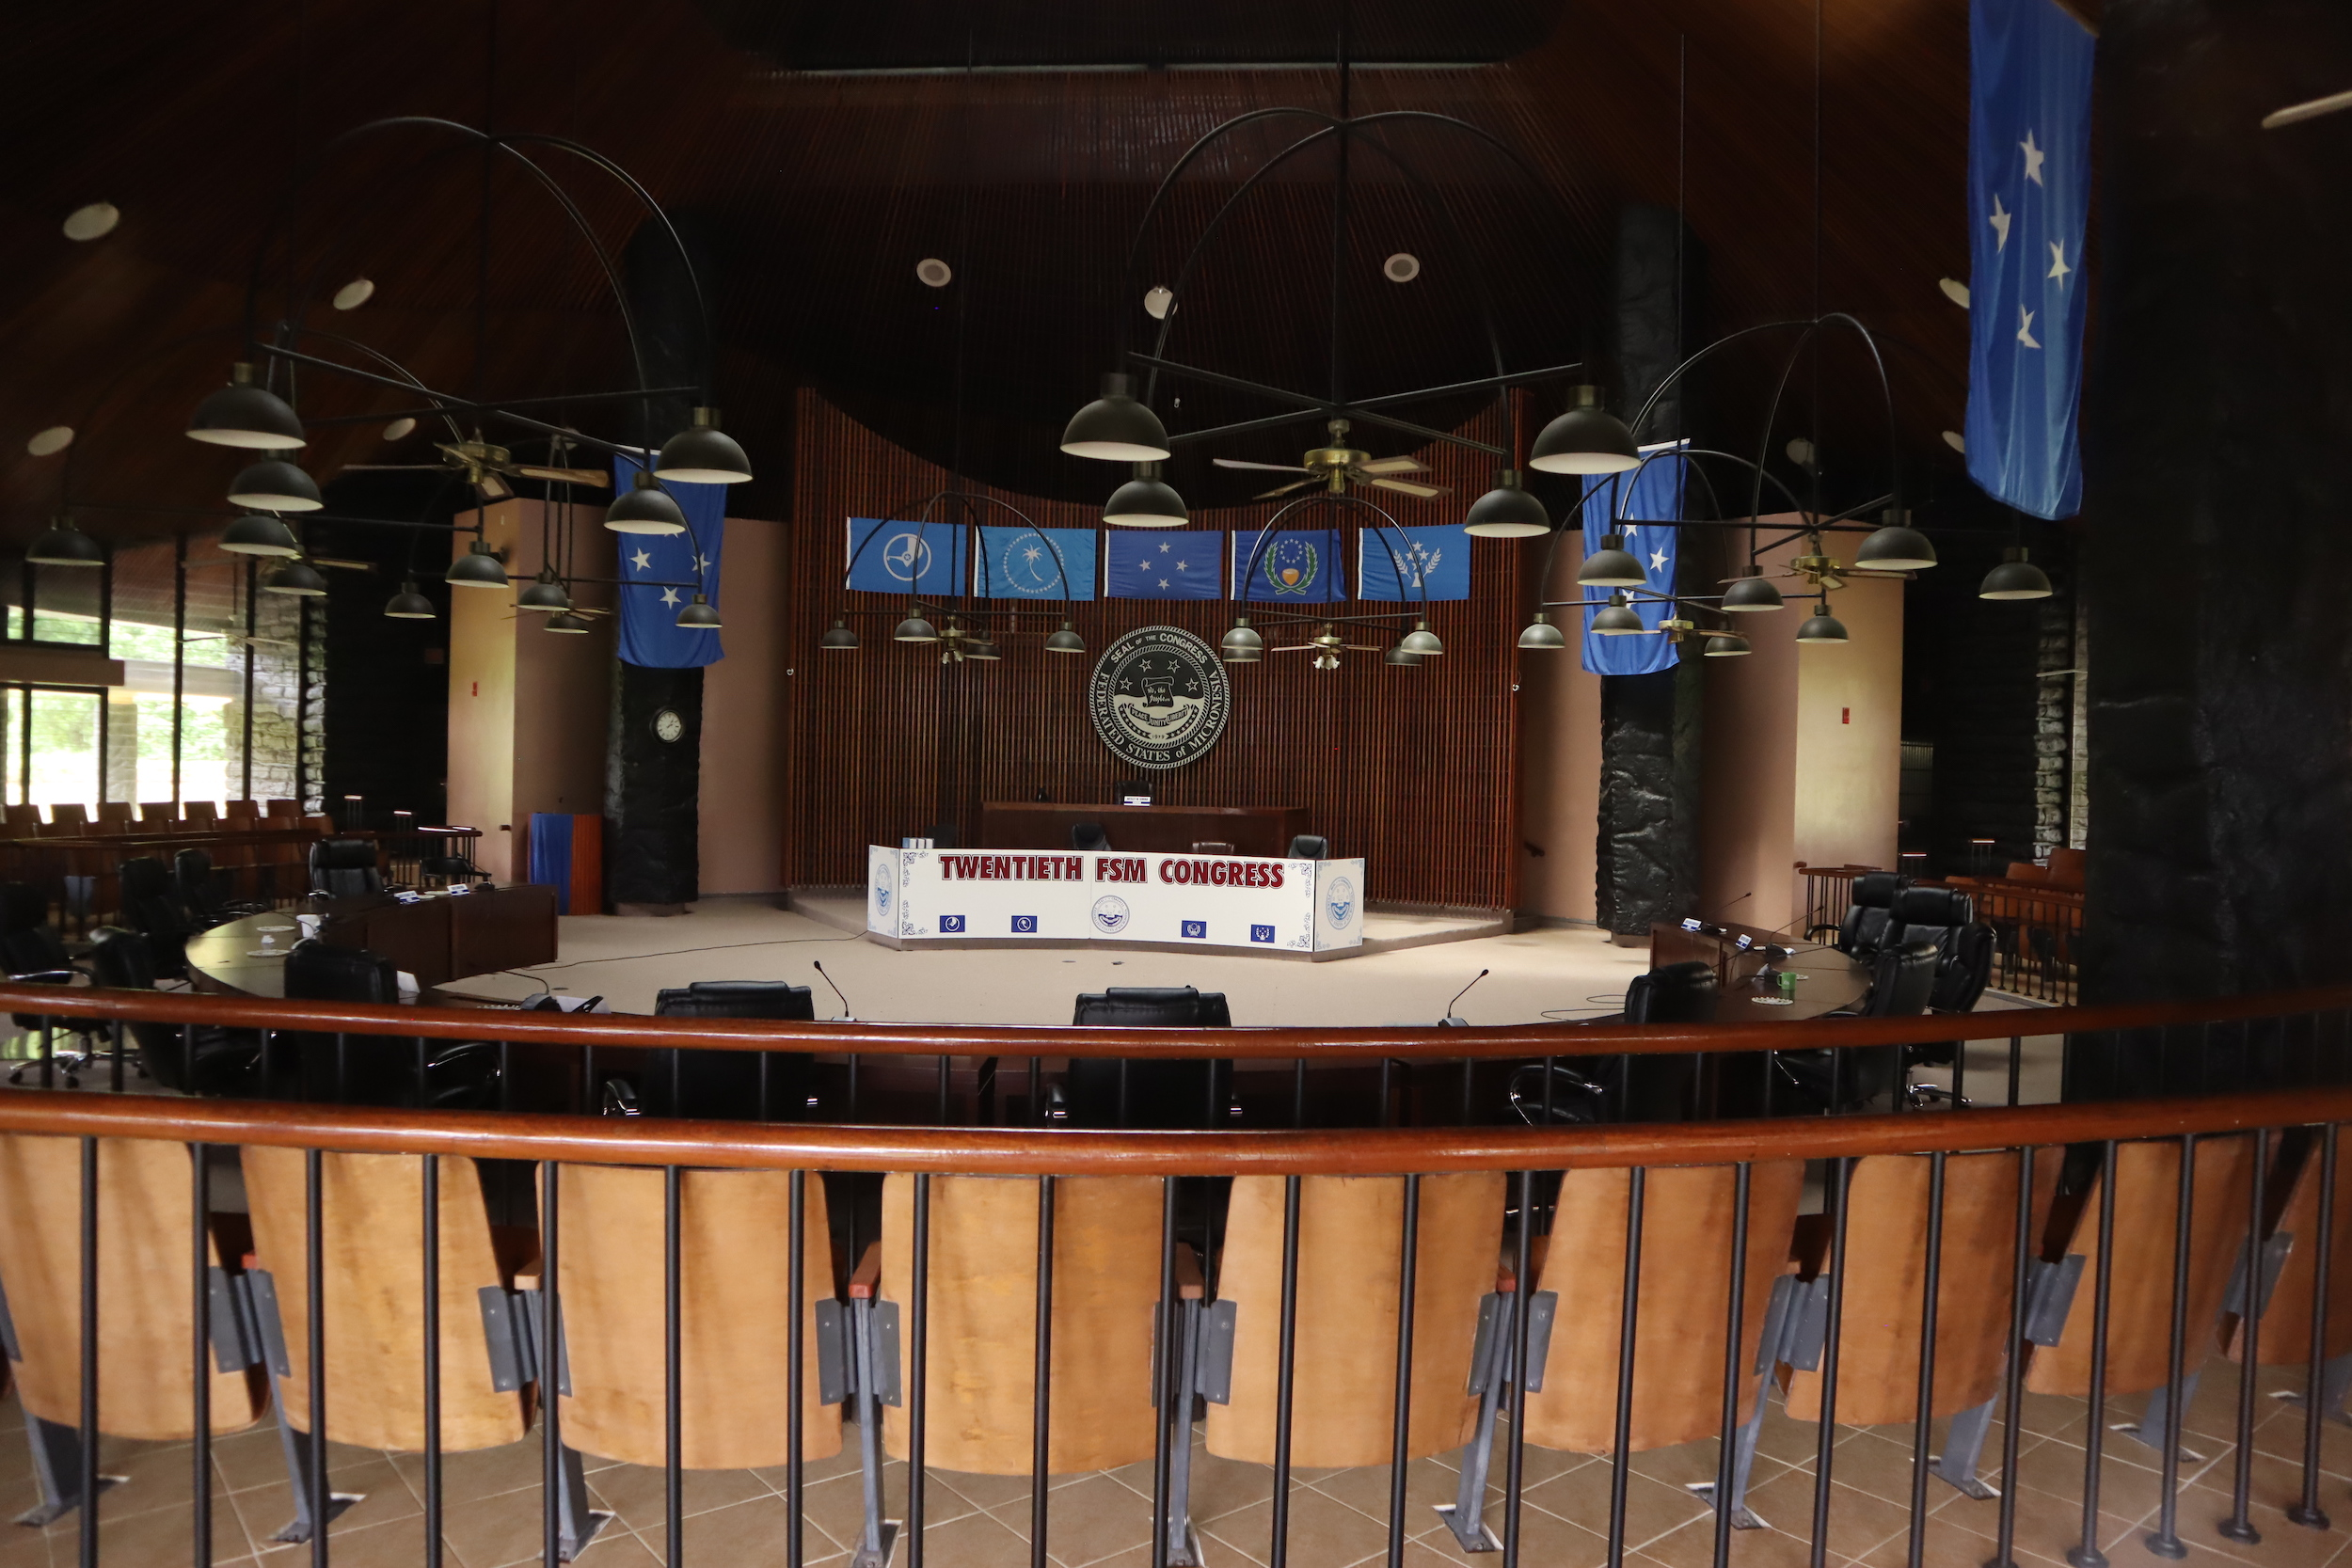 Federated States of Micronesia Congress Chamber